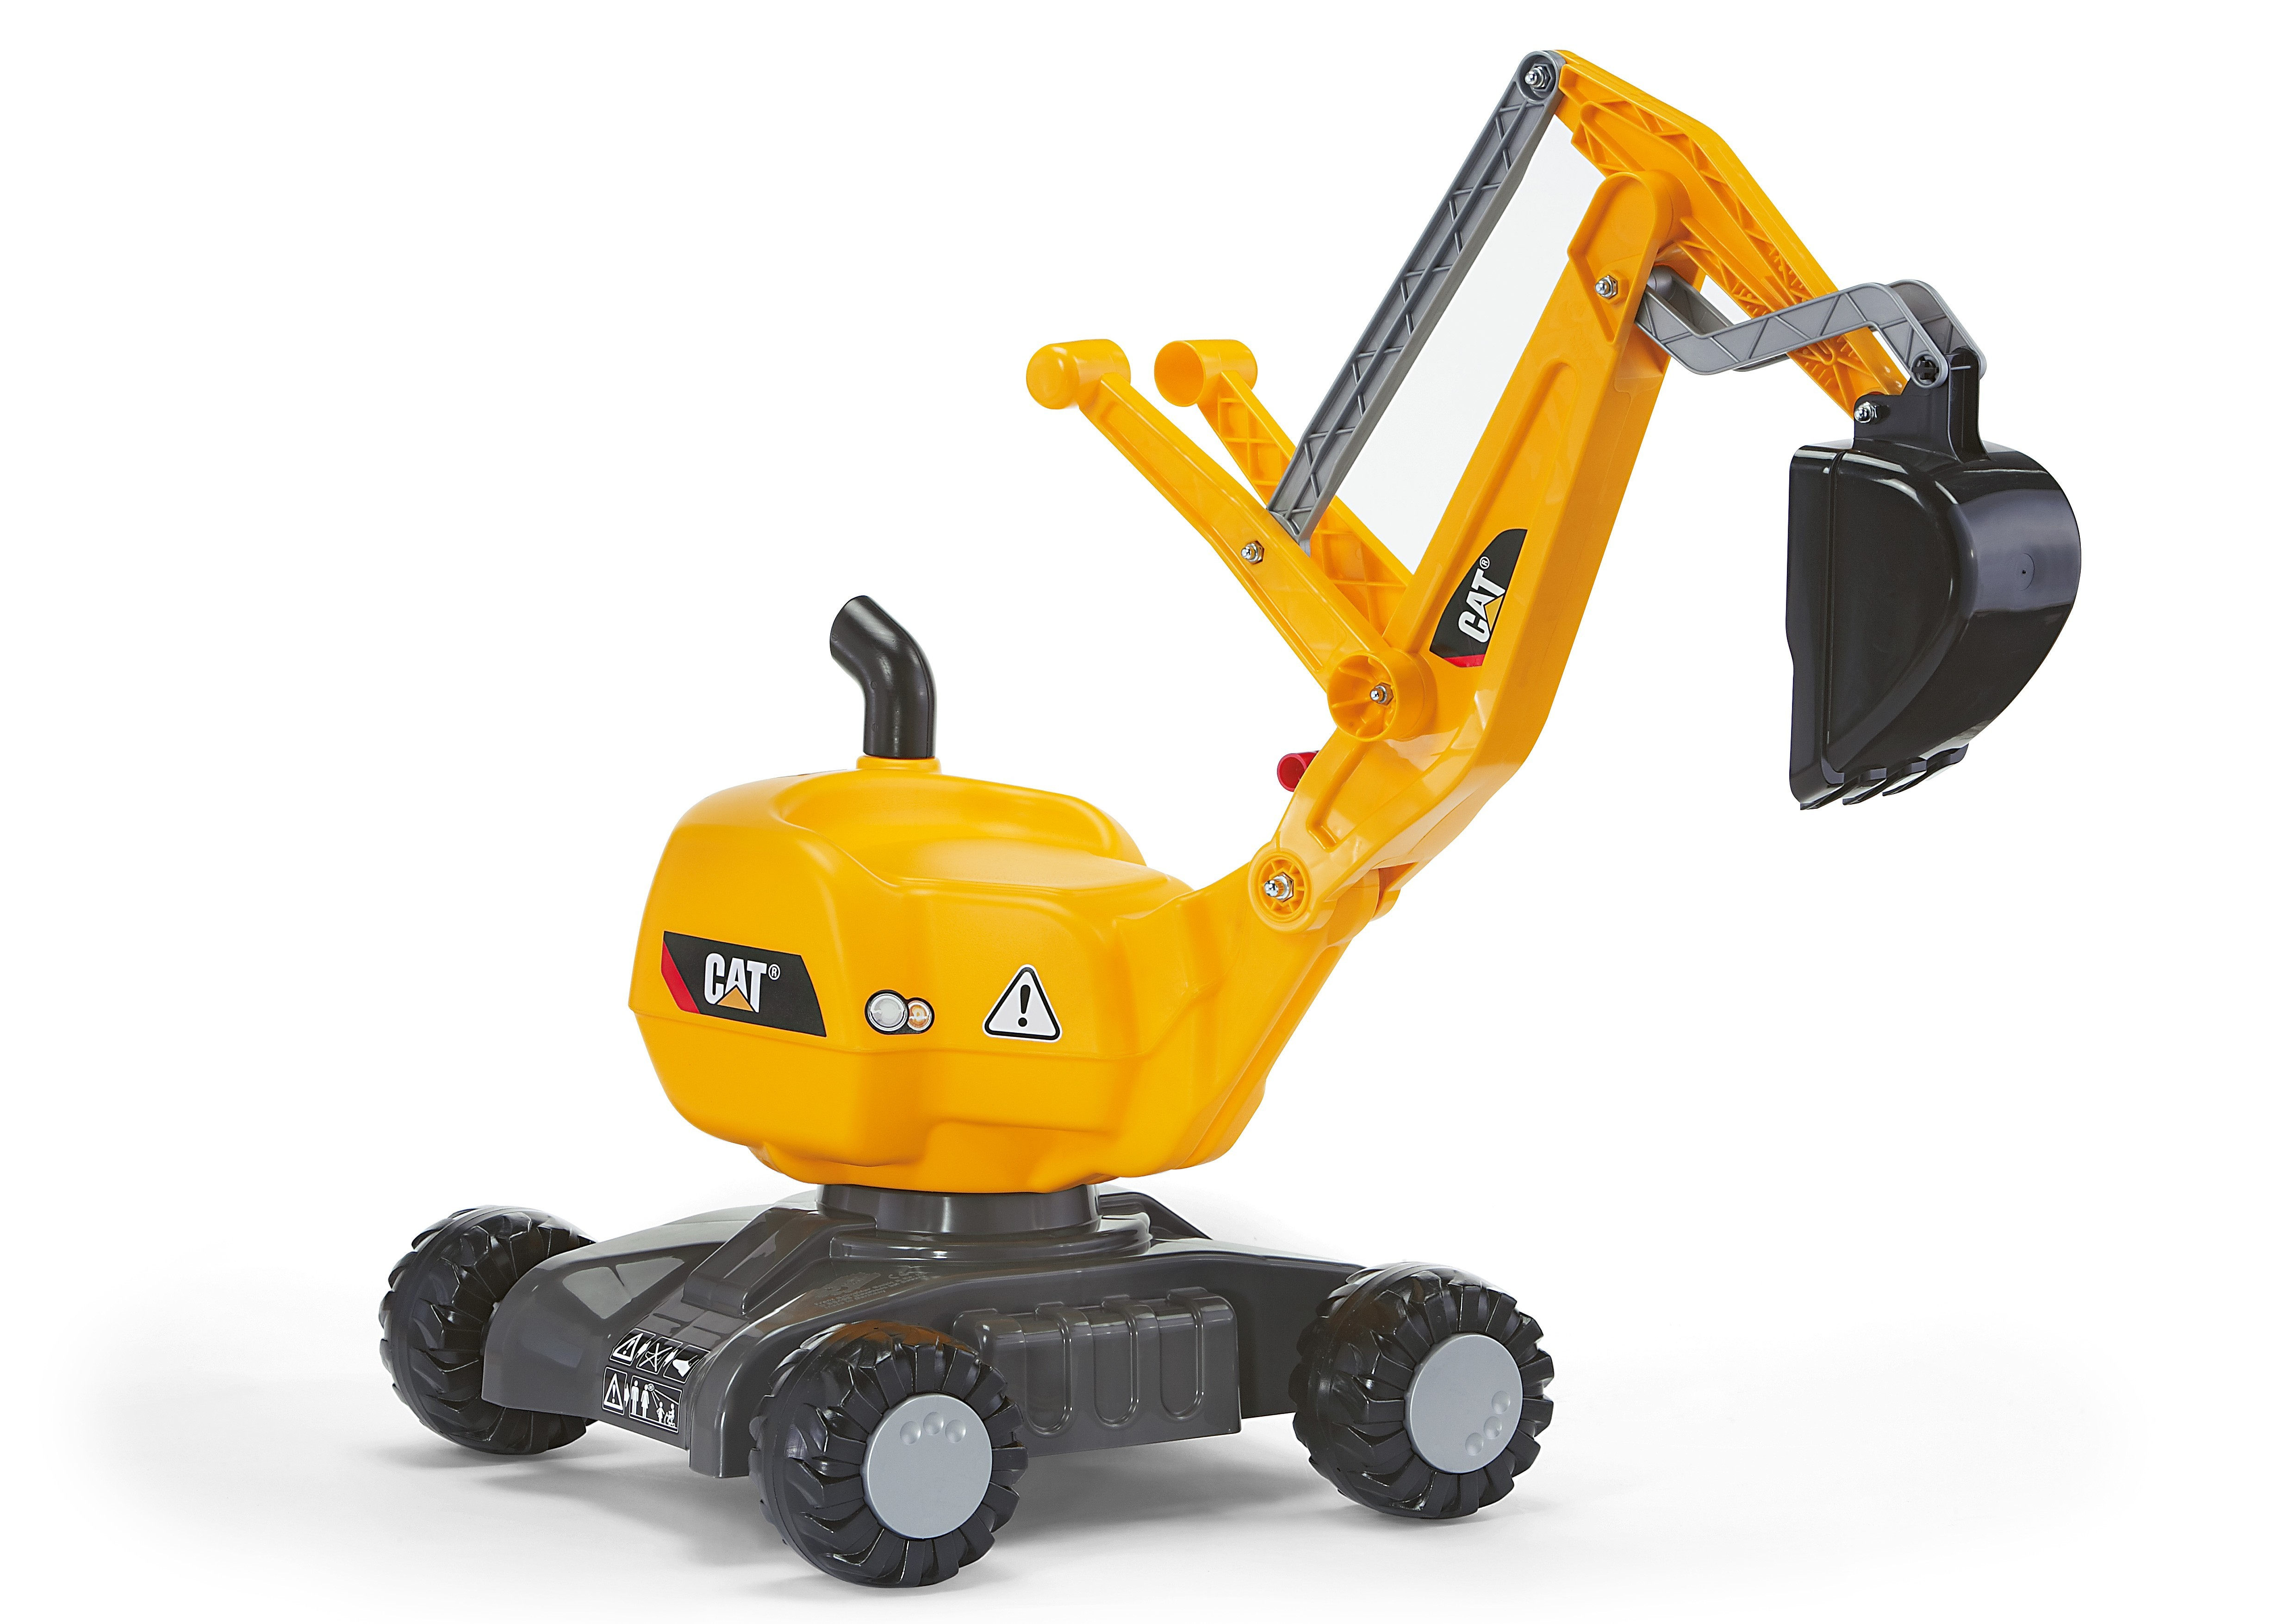 rutscher / spielzeug bagger rolly digger cat - rolly toys - bei